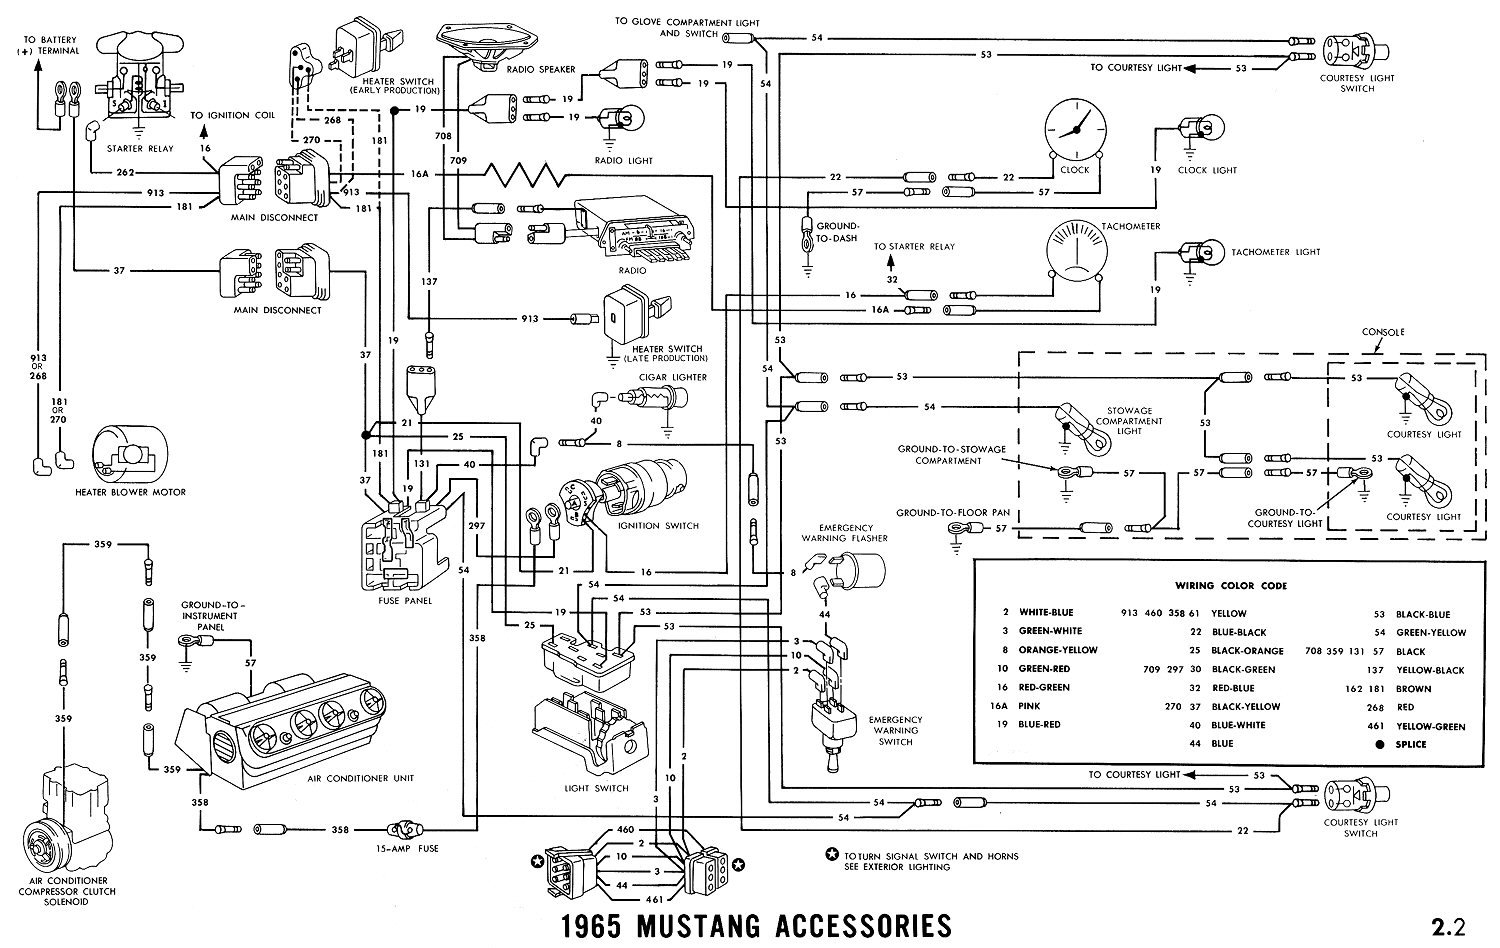 2014 Mustang Radio Wiring Diagram Library 2015